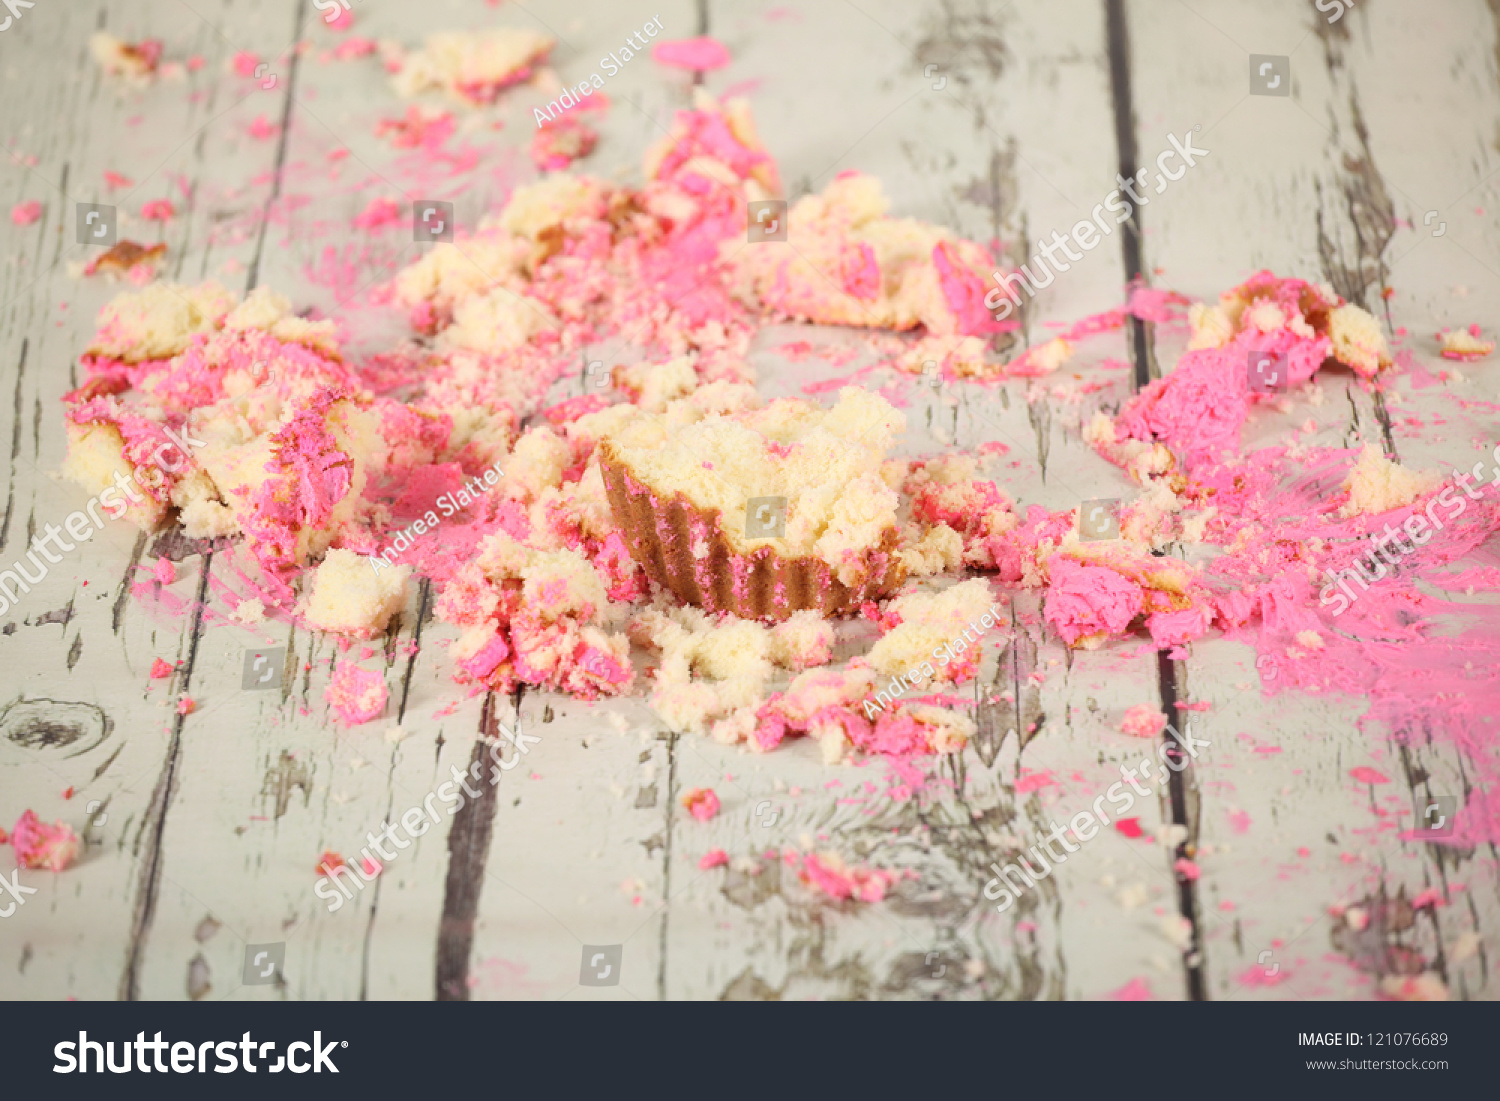 Smashed Birthday Cake Taken End Party Stock Photo Edit Now